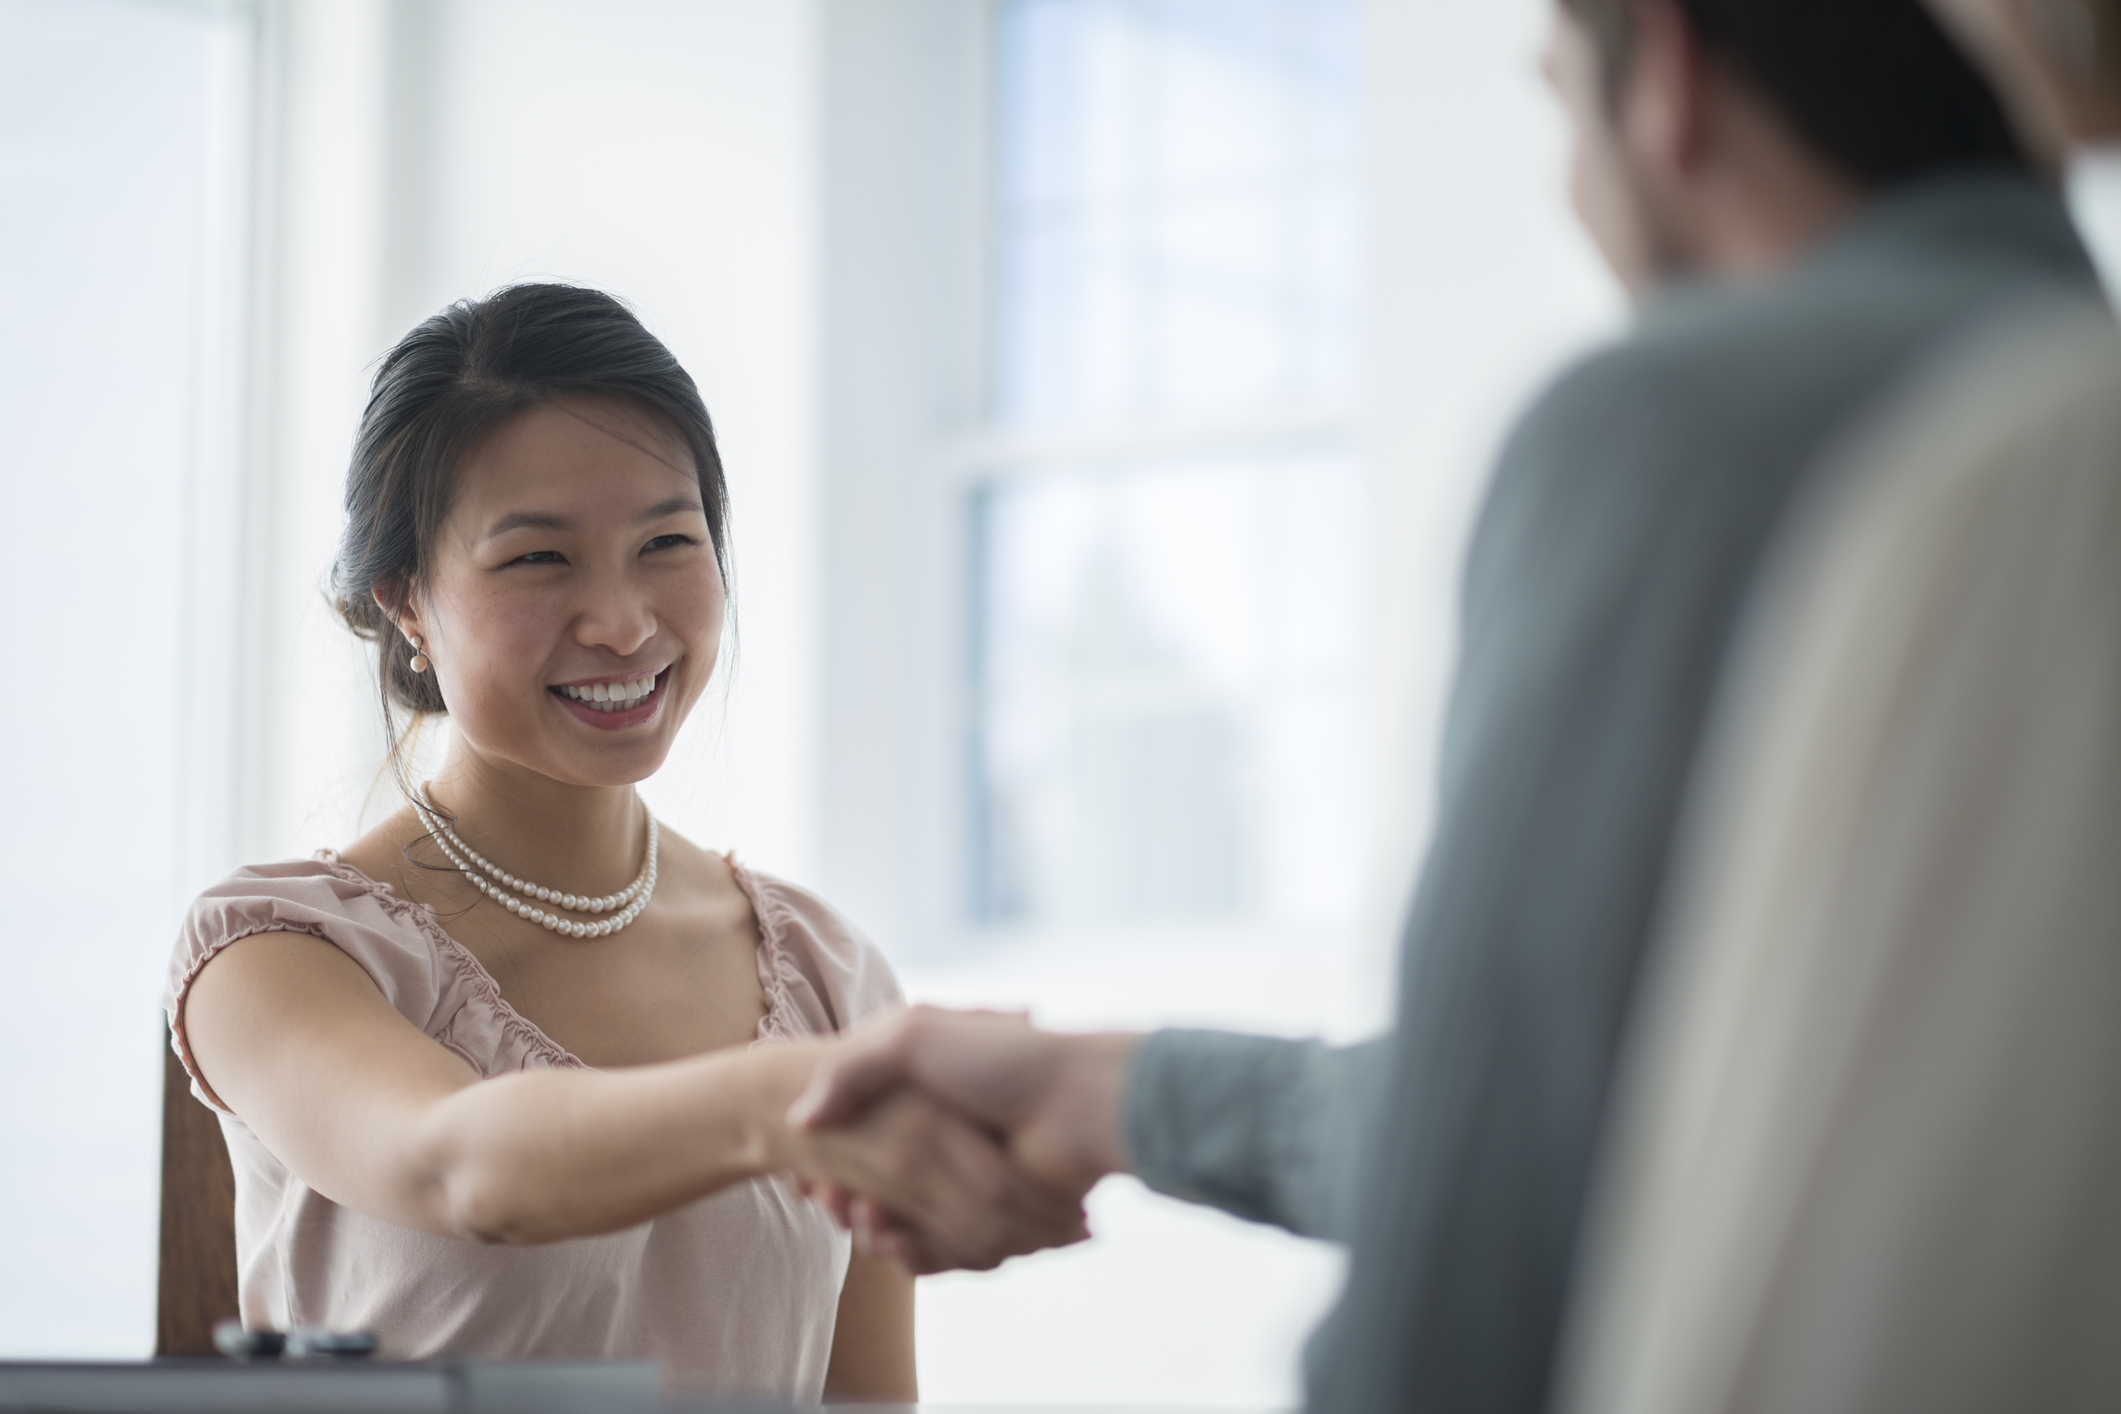 physician assistant career rankings salary reviews and advice 5 things to consider when you are preparing for a job interview